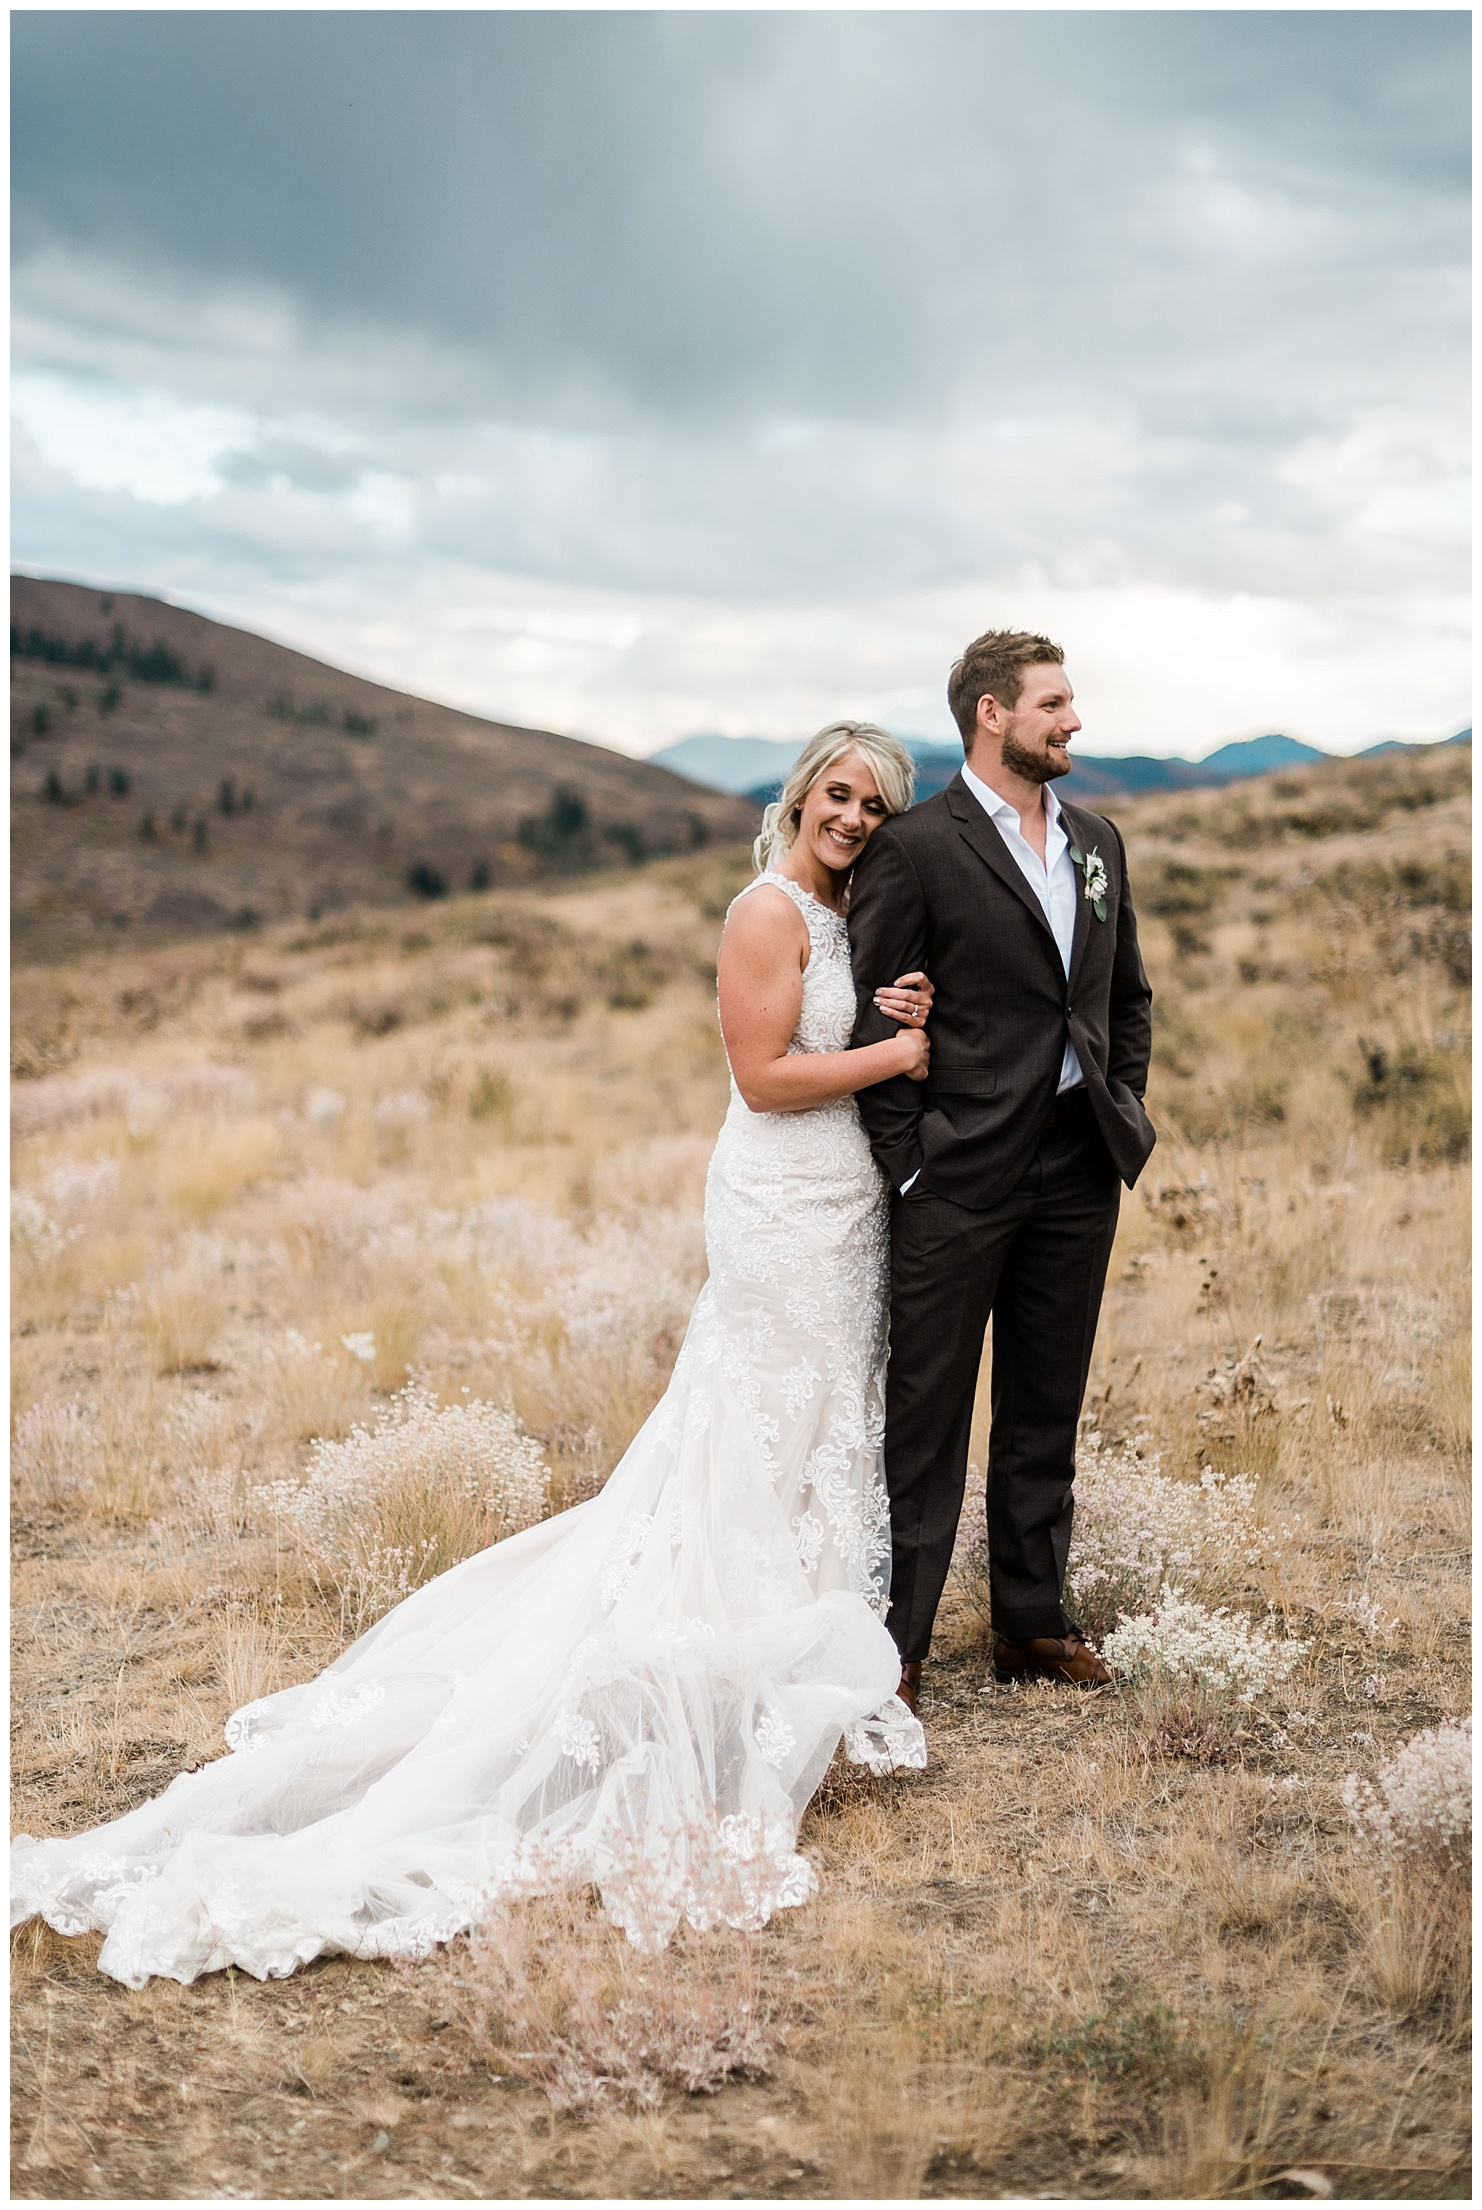 Sun Mountain Lodge Wedding in the North Cascades by Forthright Photo, Washington Outdoor Wedding Photographers